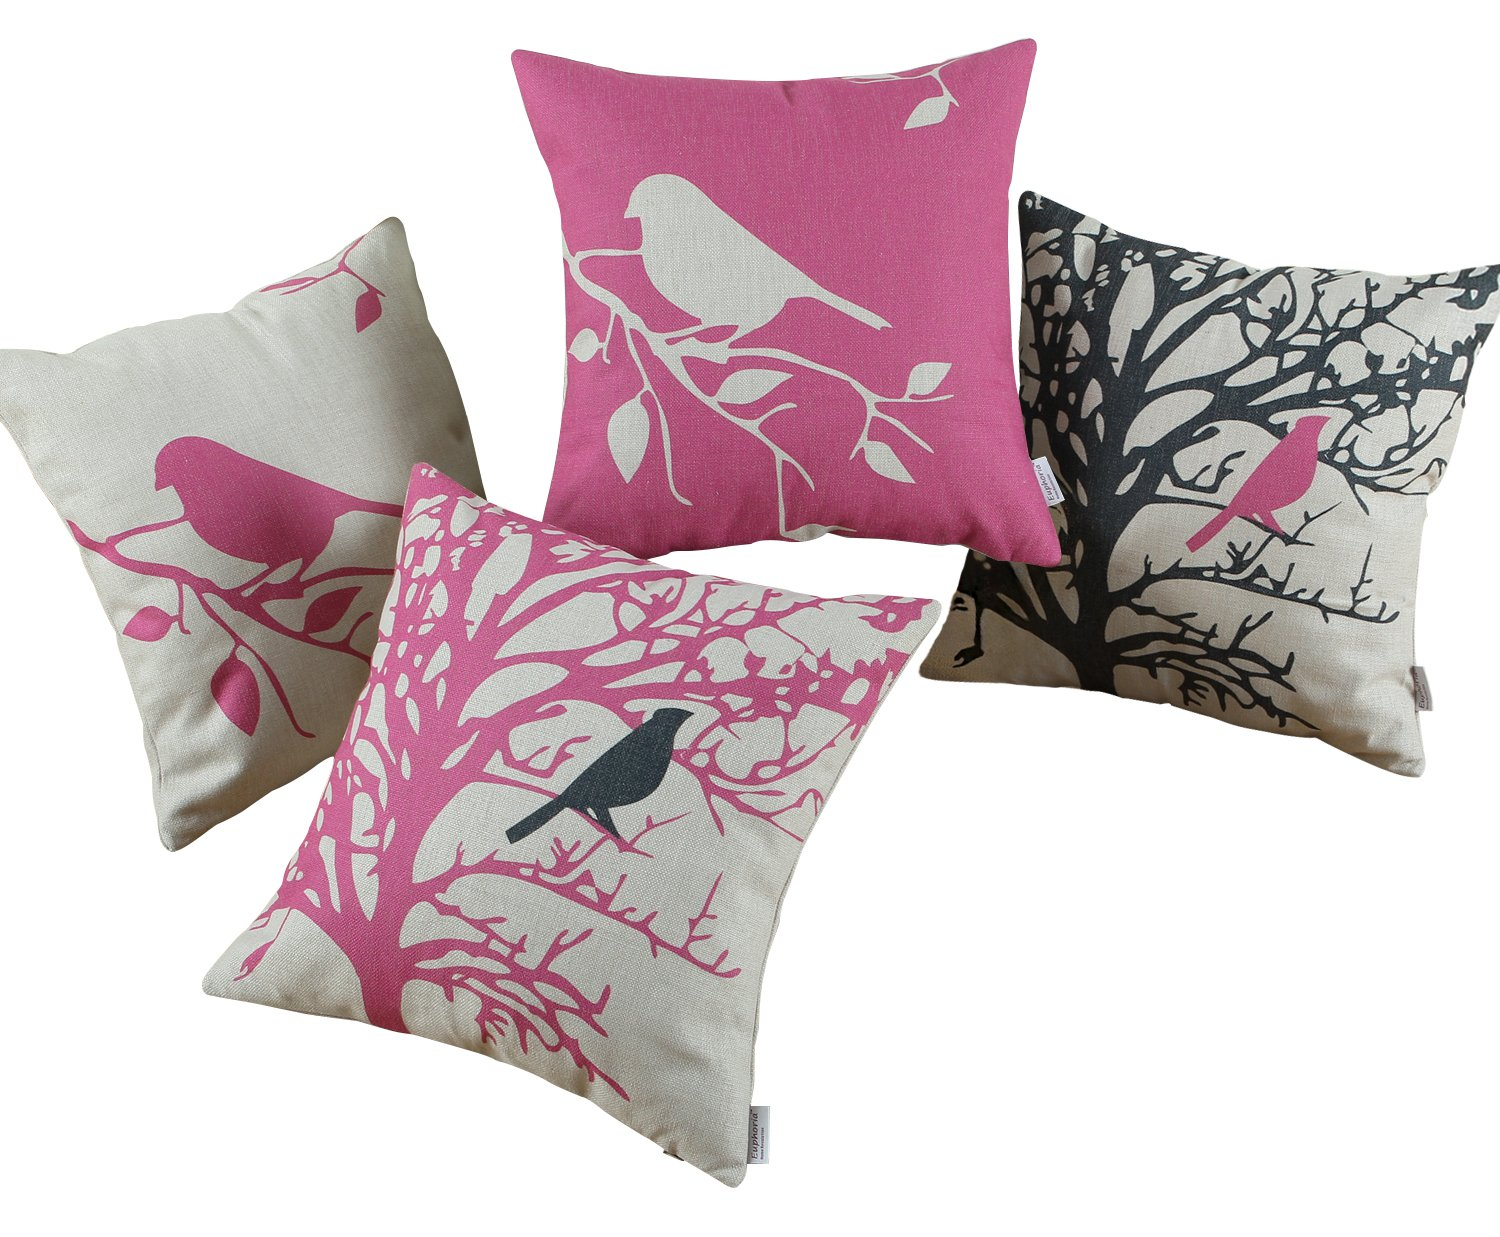 Euphoria CaliTime Throw Pillows Covers Vintage Birds Branches, 18 X 18 Inches, Black Pink, Set of 4